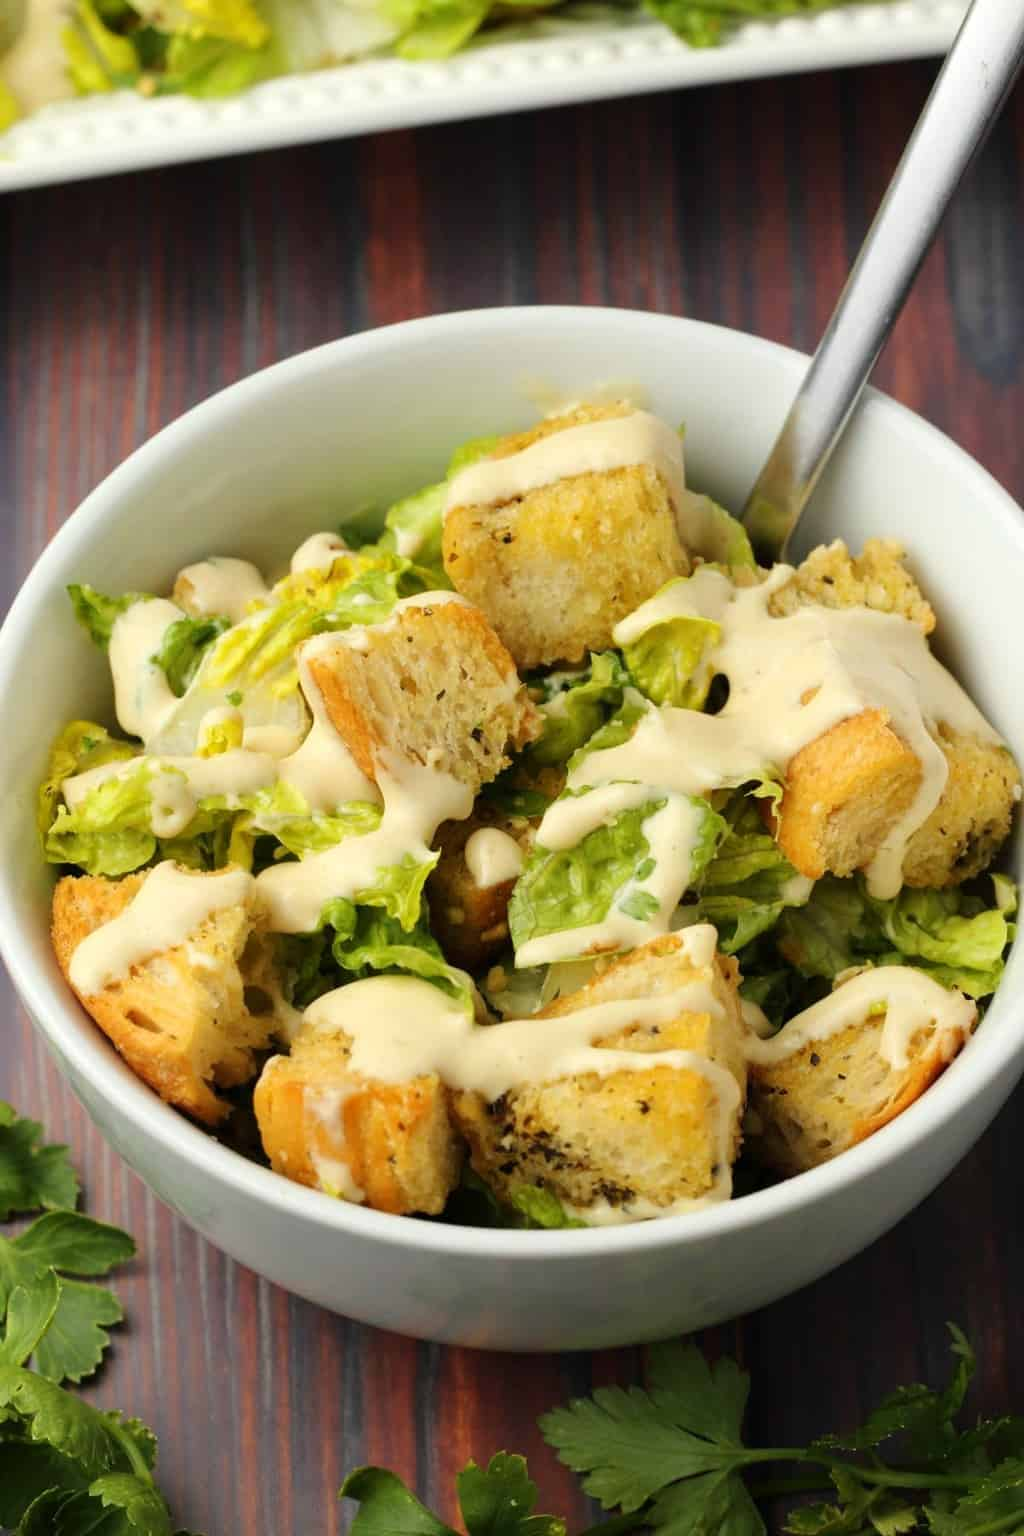 Vegan caesar salad in a white bowl with a spoon.